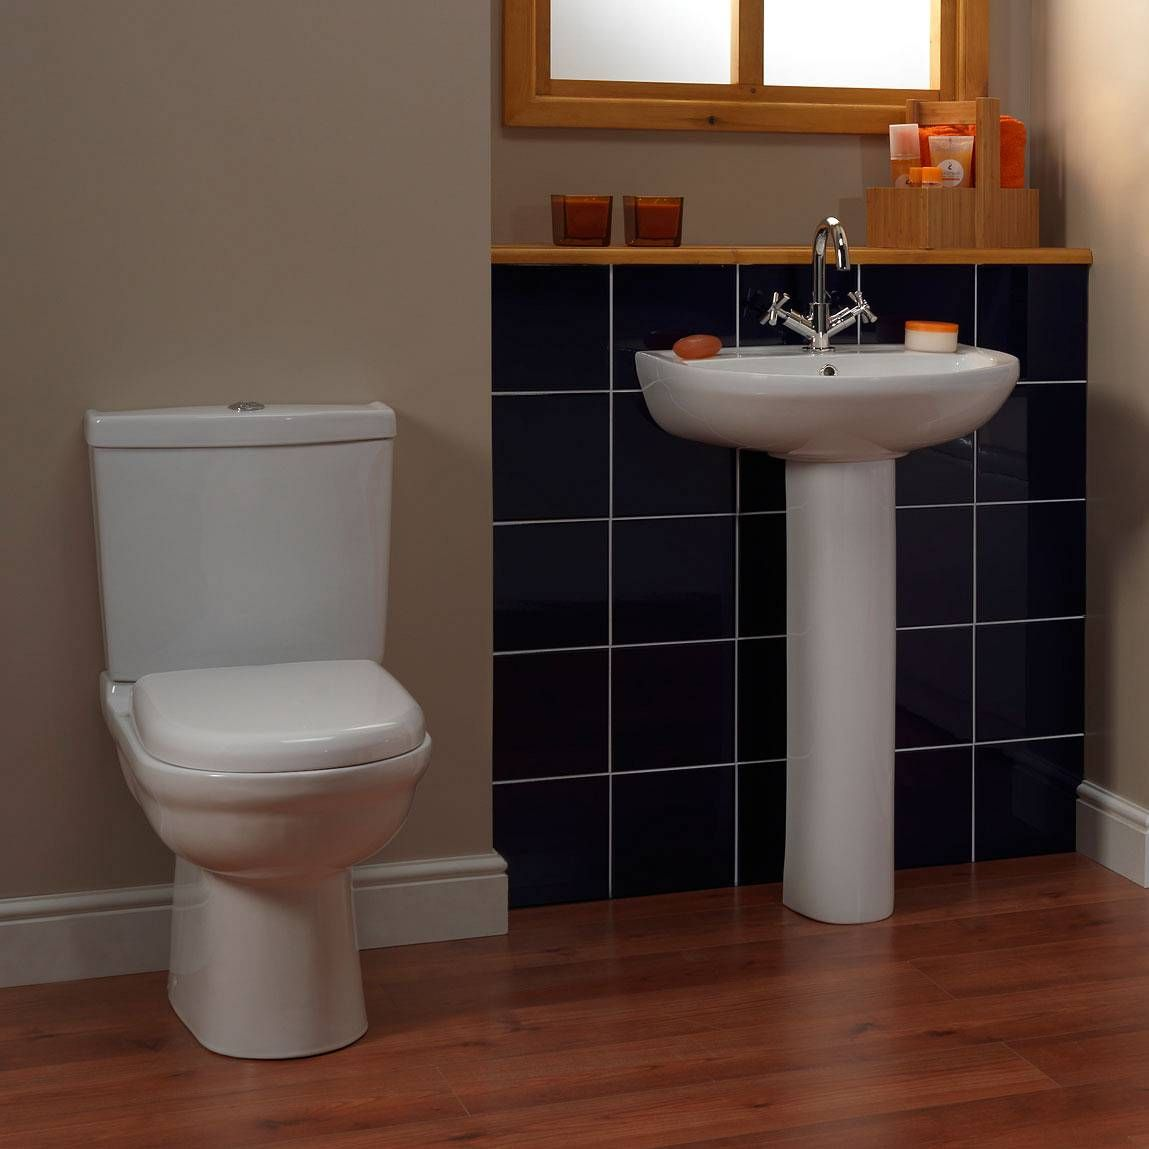 Como 4 Piece Bathroom Suite Victoria Plumb Bathroom Suite Toilet Suites Stylish Bathroom